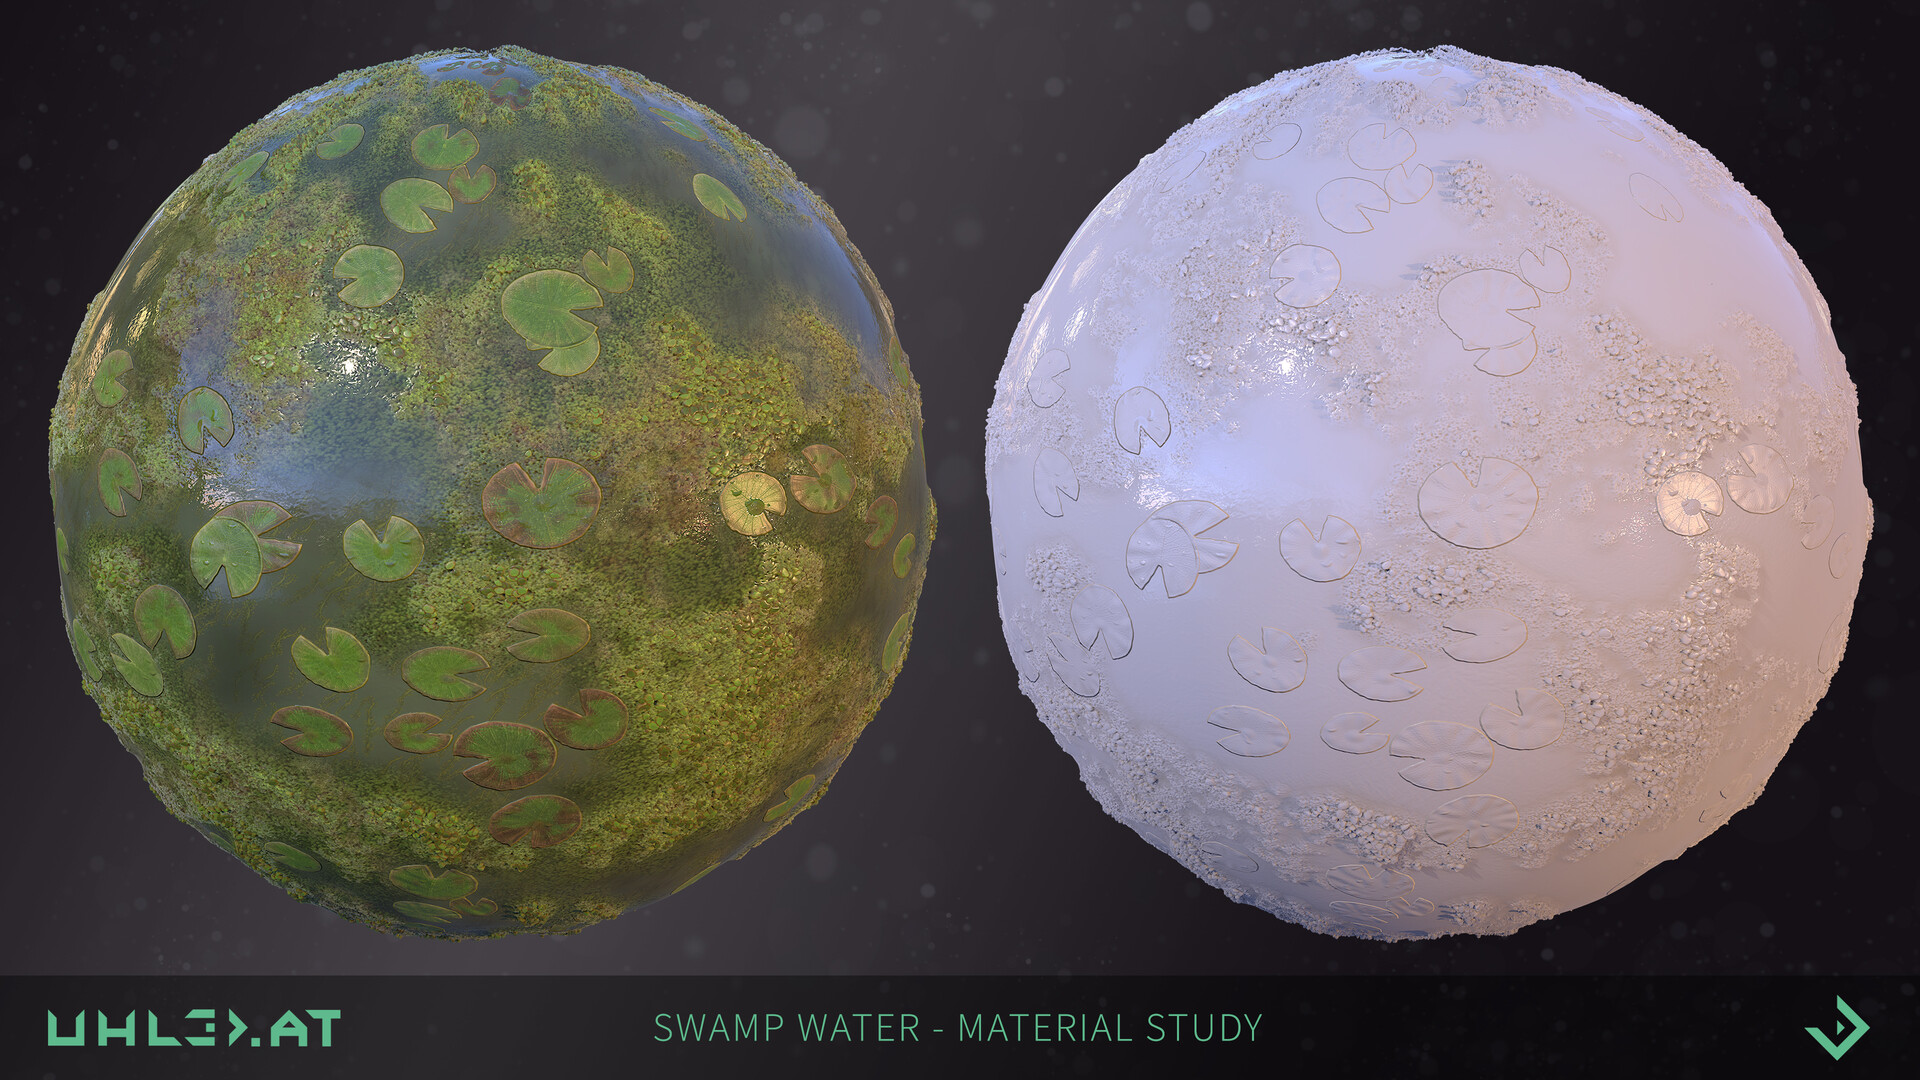 Dominik uhl swamp water 01